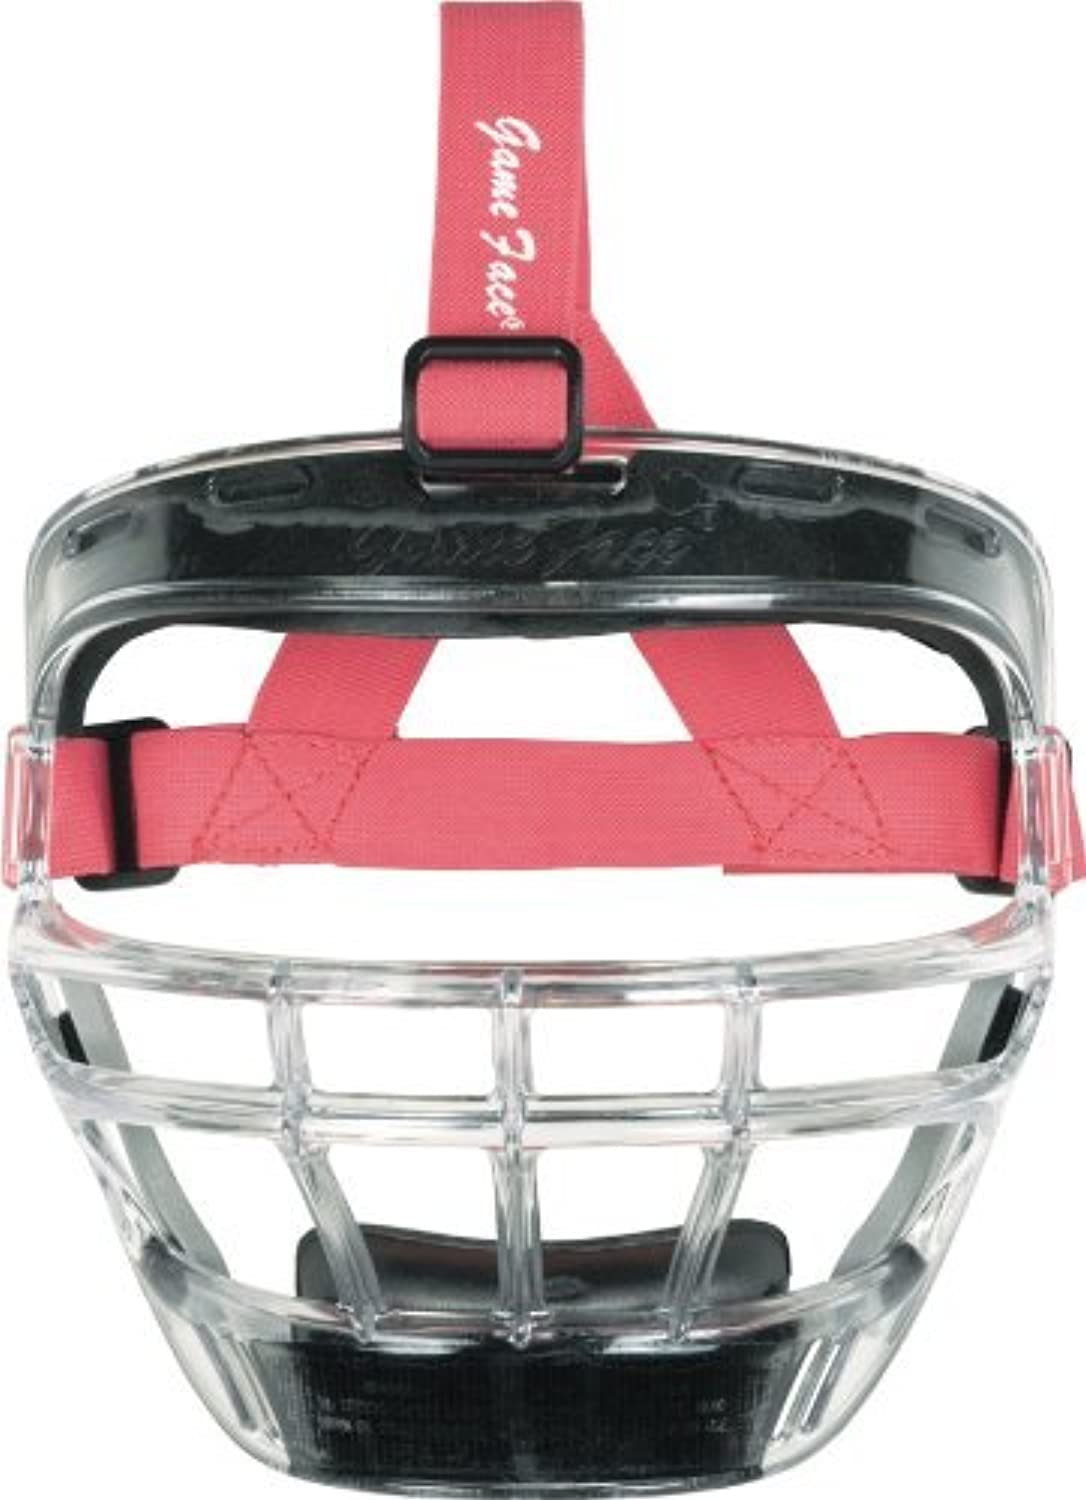 Markwort Game Face Sports Safety Mask (Clear with Pink Ponytail Harness, Large) by Markwort